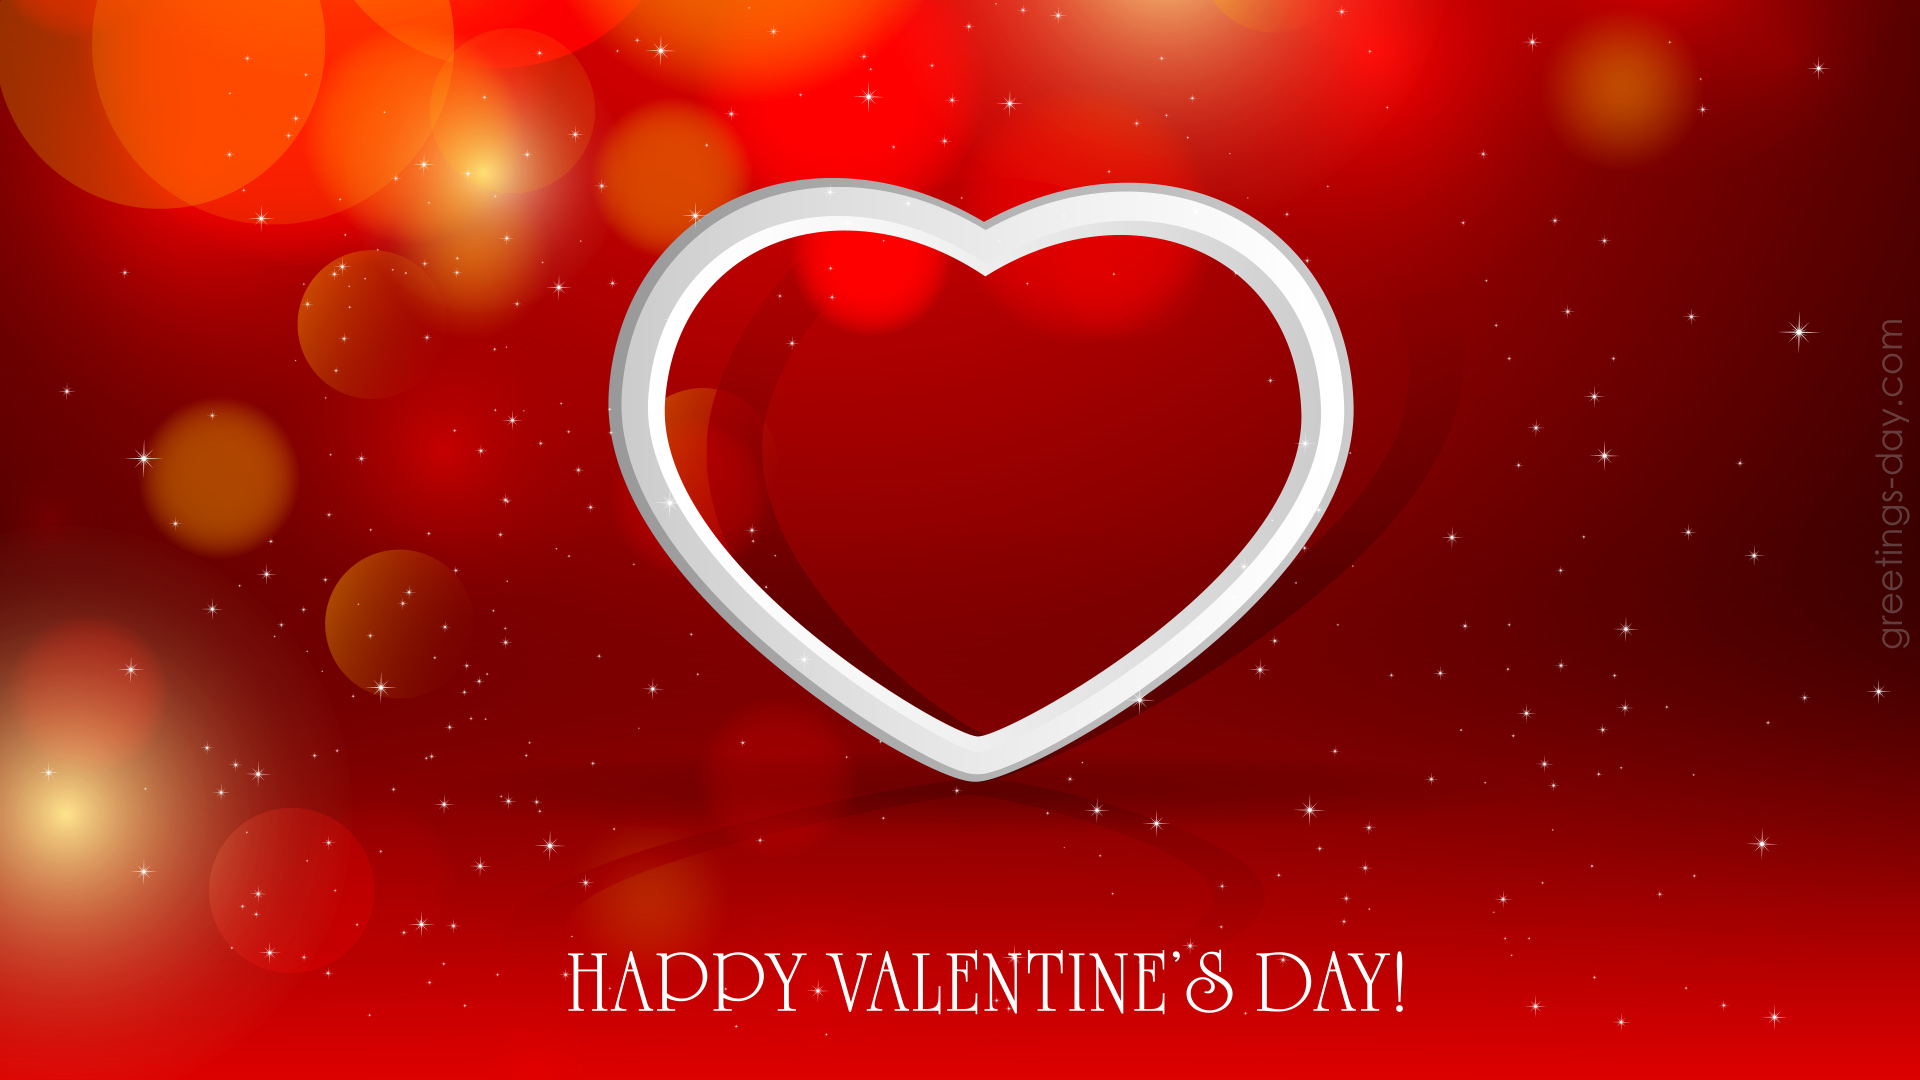 Valentines Day Greeting Cards Pictures Animated GIFs – San Valentines Cards